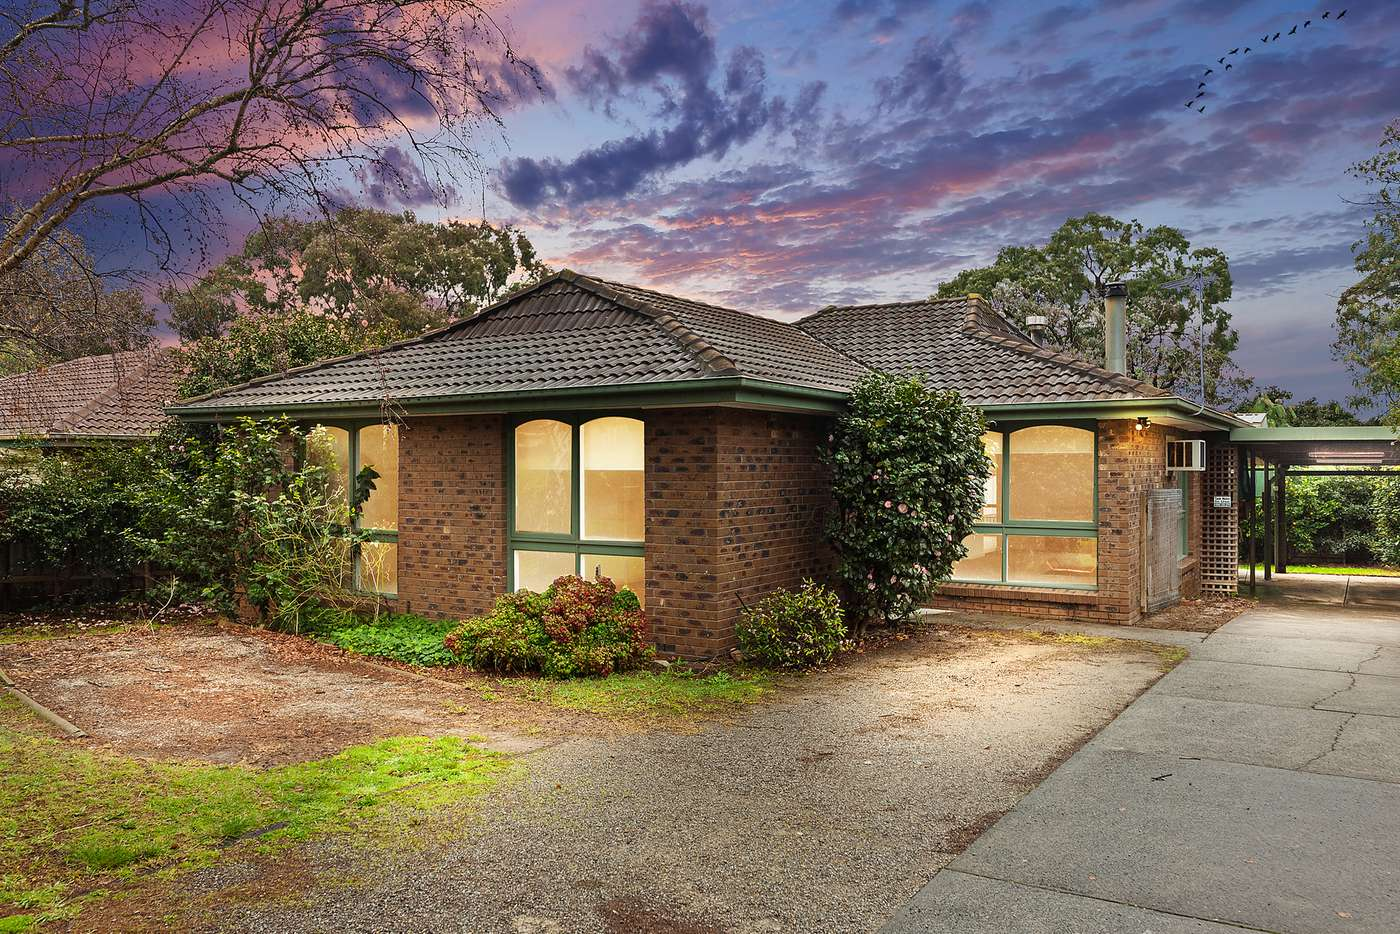 Main view of Homely house listing, 11 Ravensthorpe Crescent, Narre Warren VIC 3805